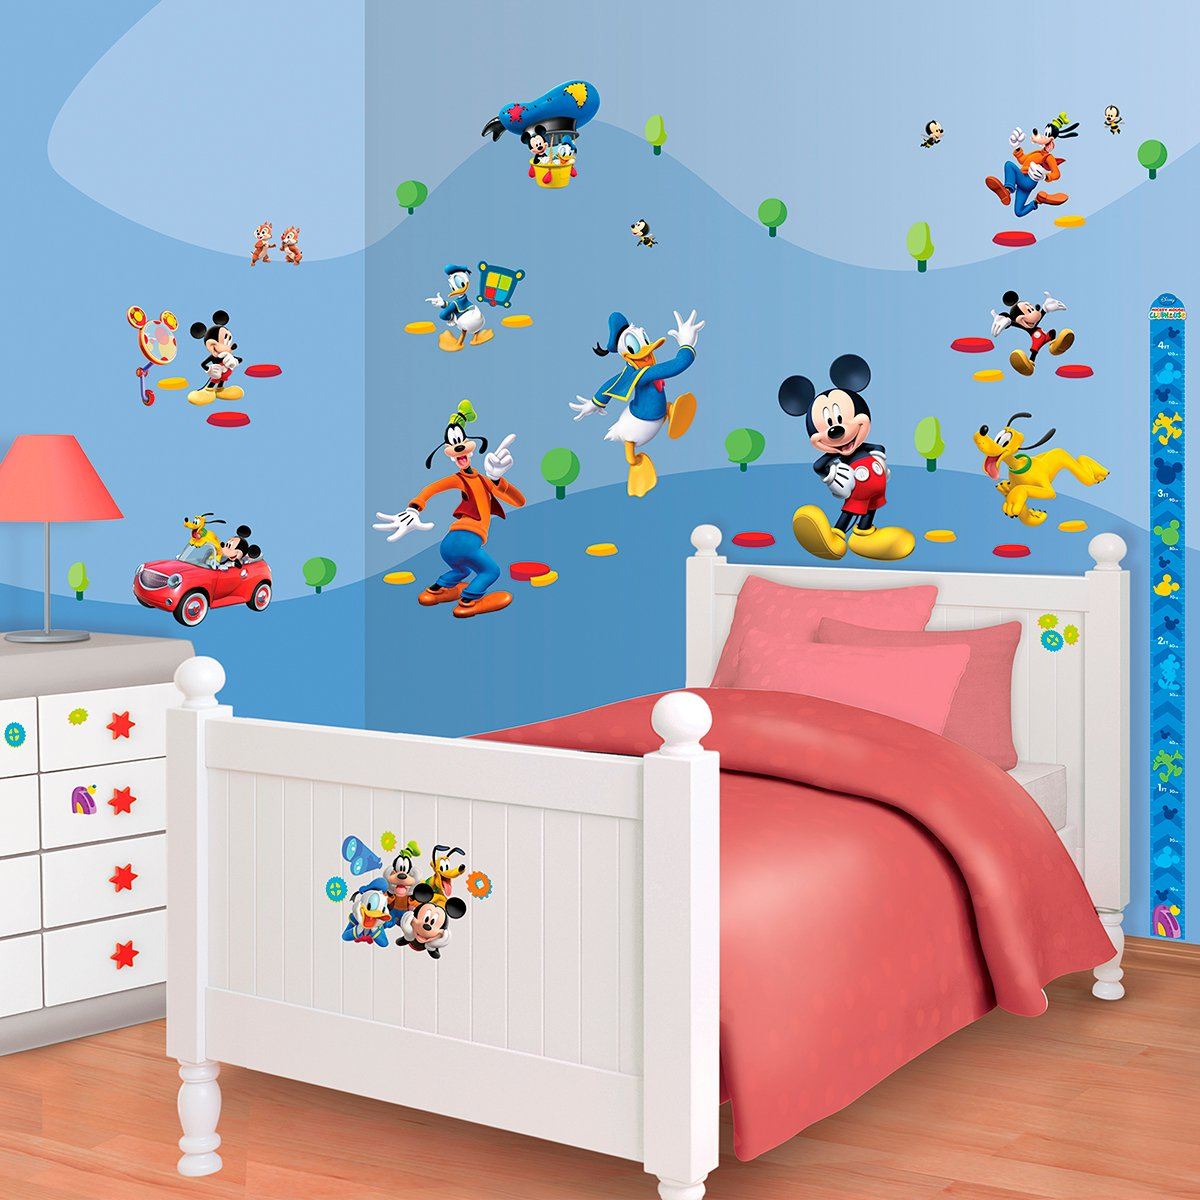 Walltastic Mini Kit Disney Mickey Mouse jetzt bestellen